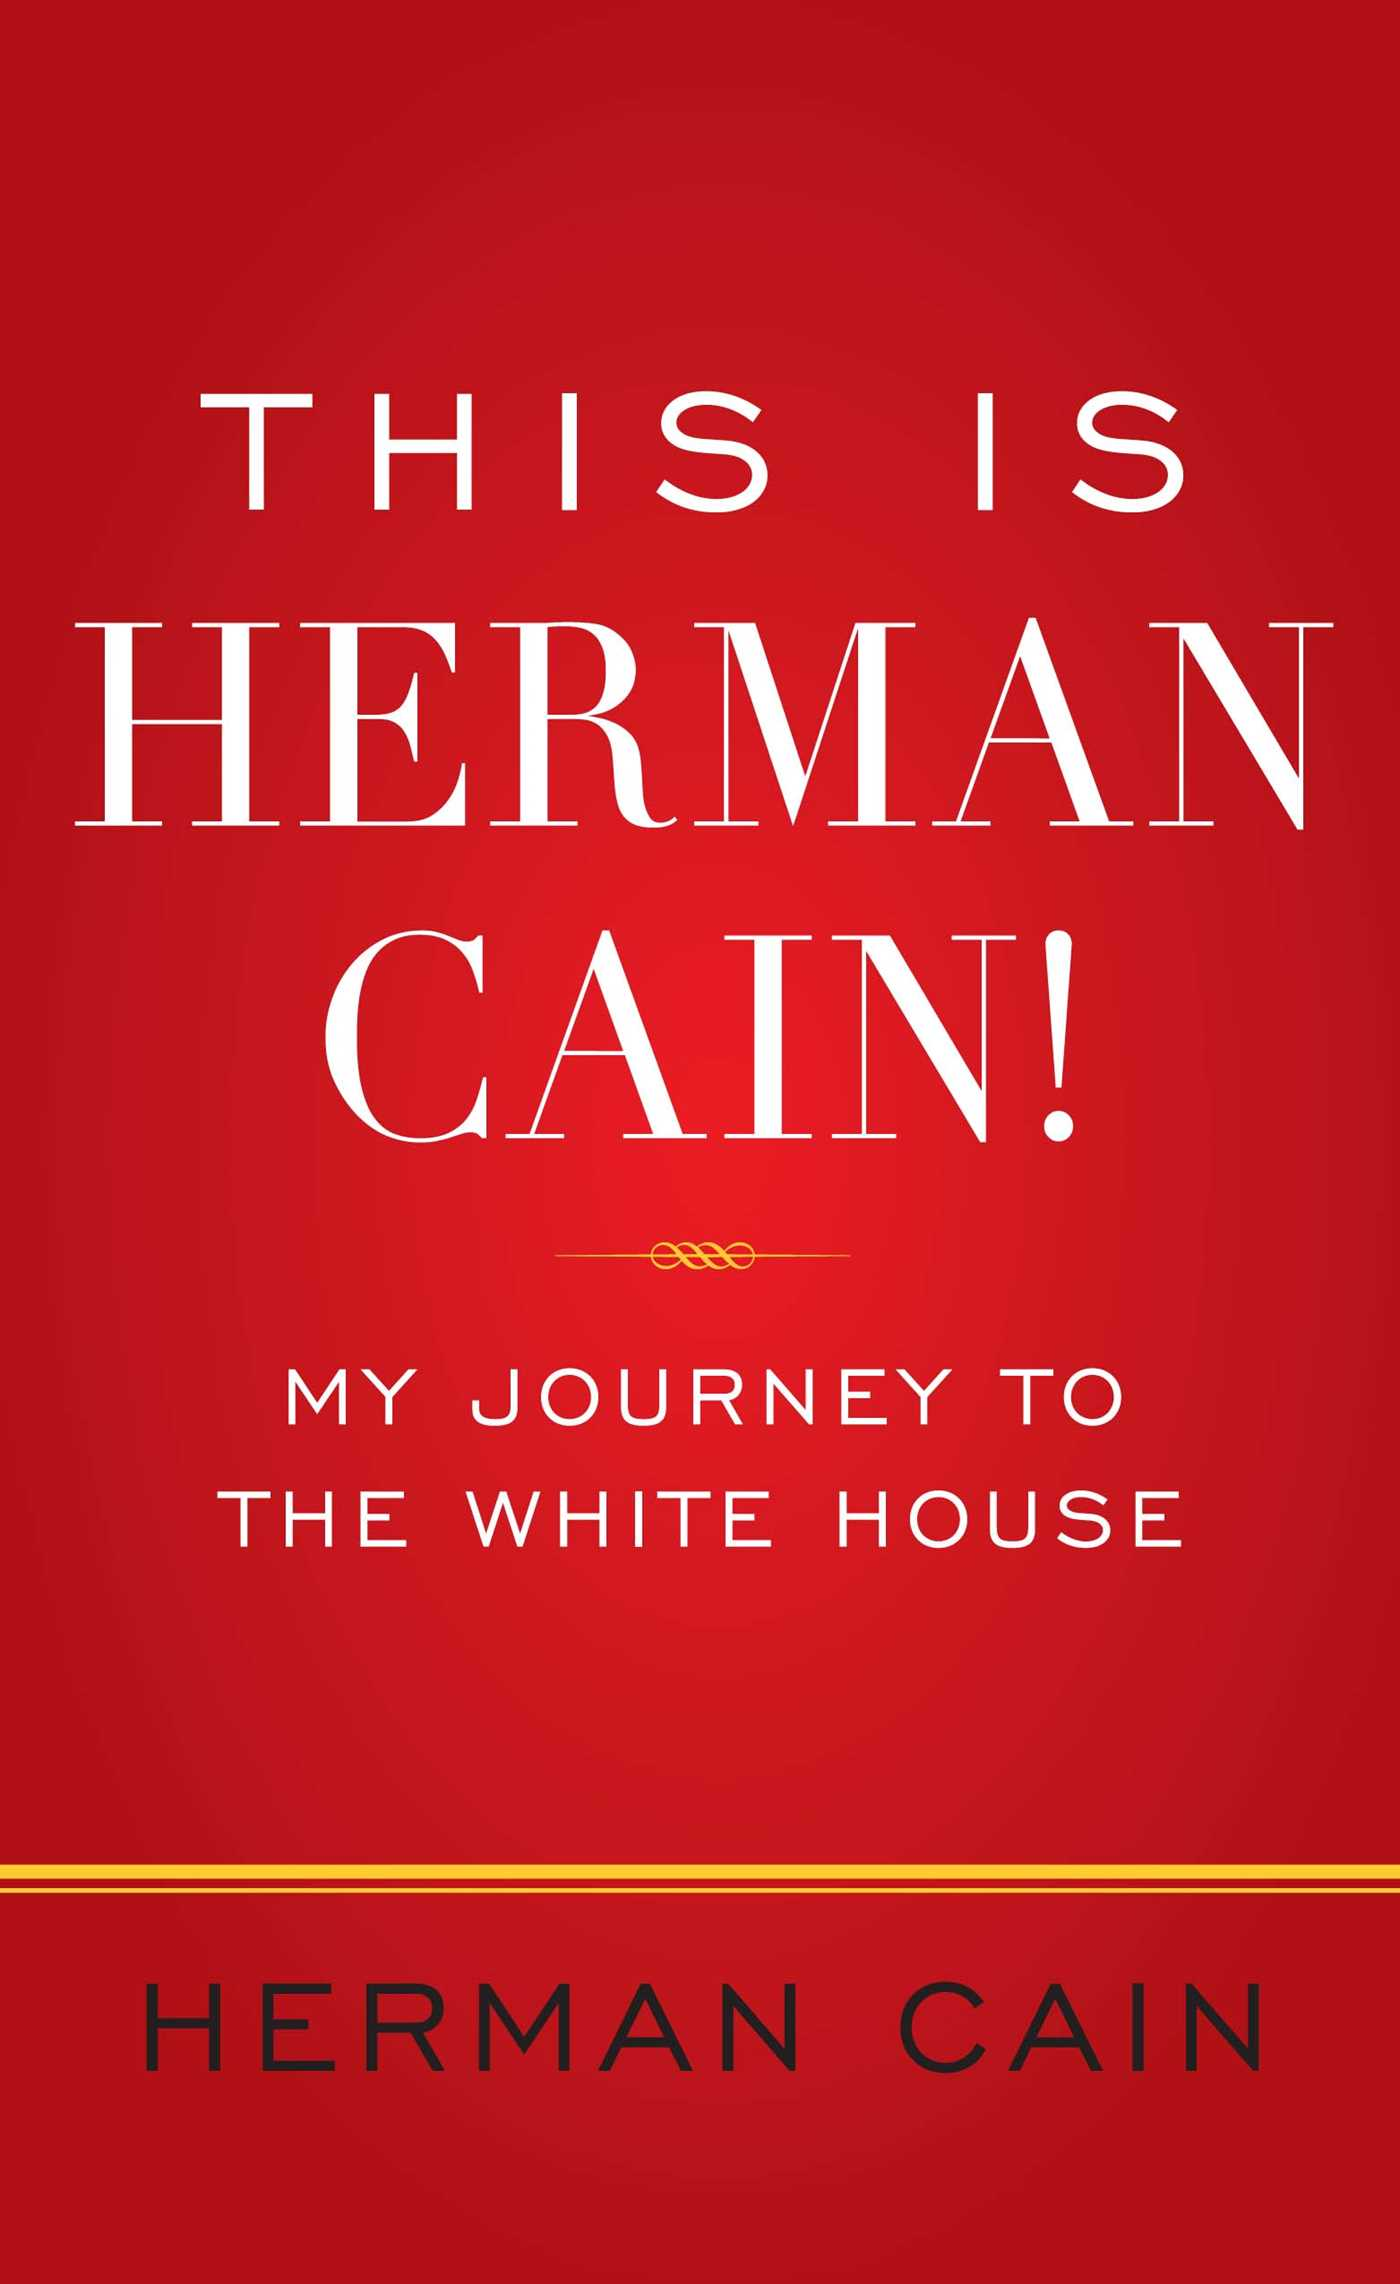 This is herman cain! 9781451666144 hr